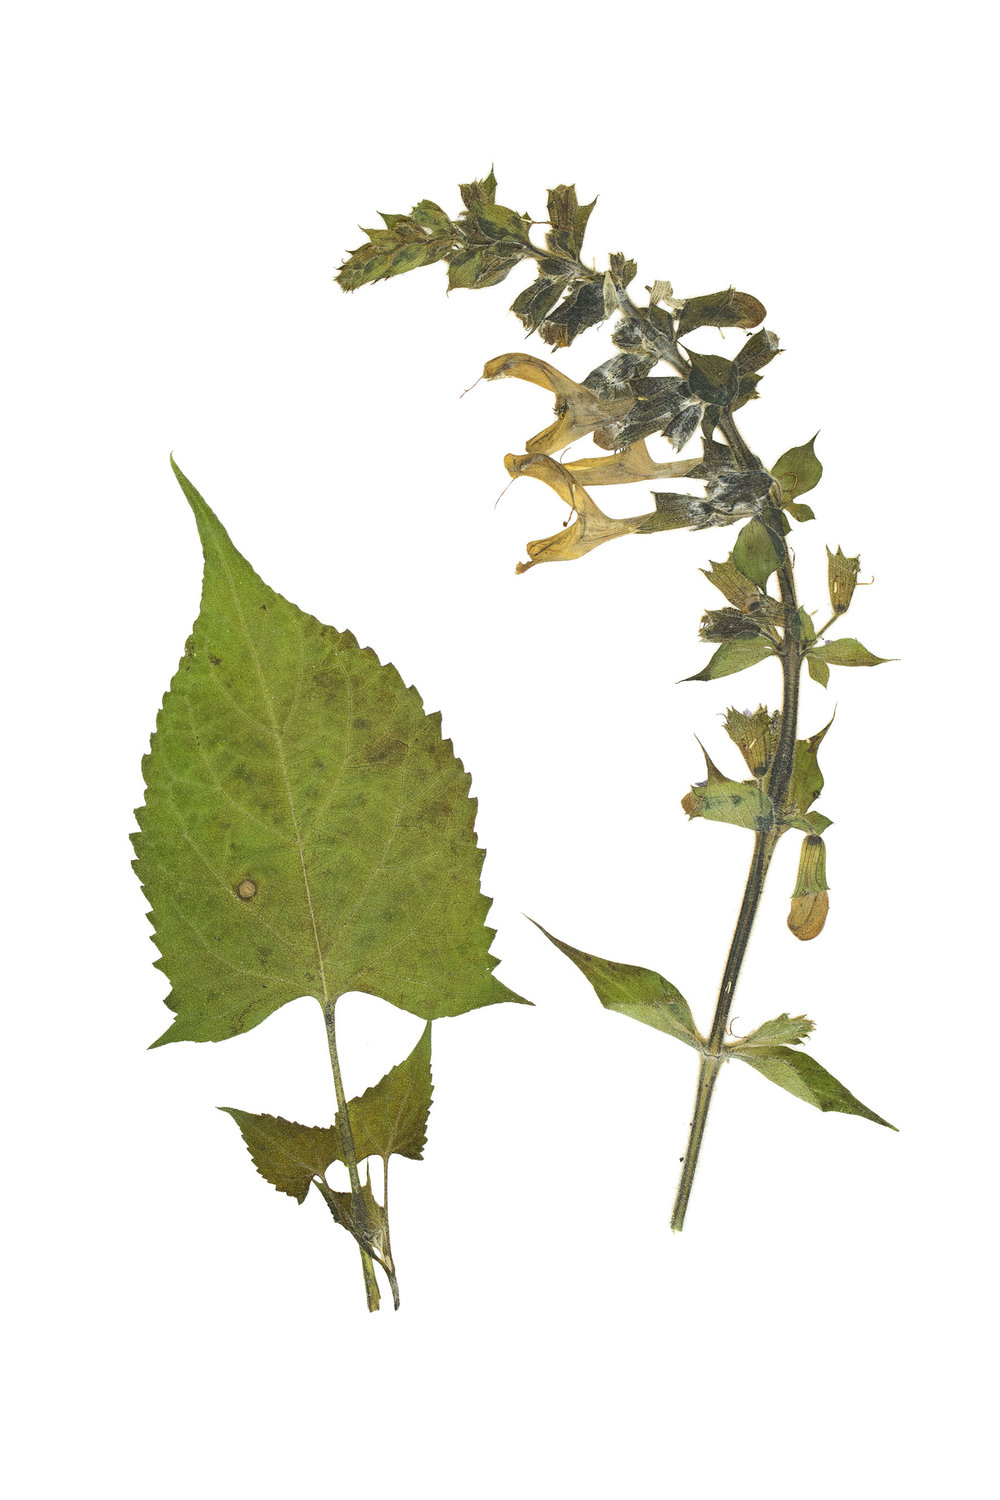 New! Salvia glutinosa / Sticky Sage